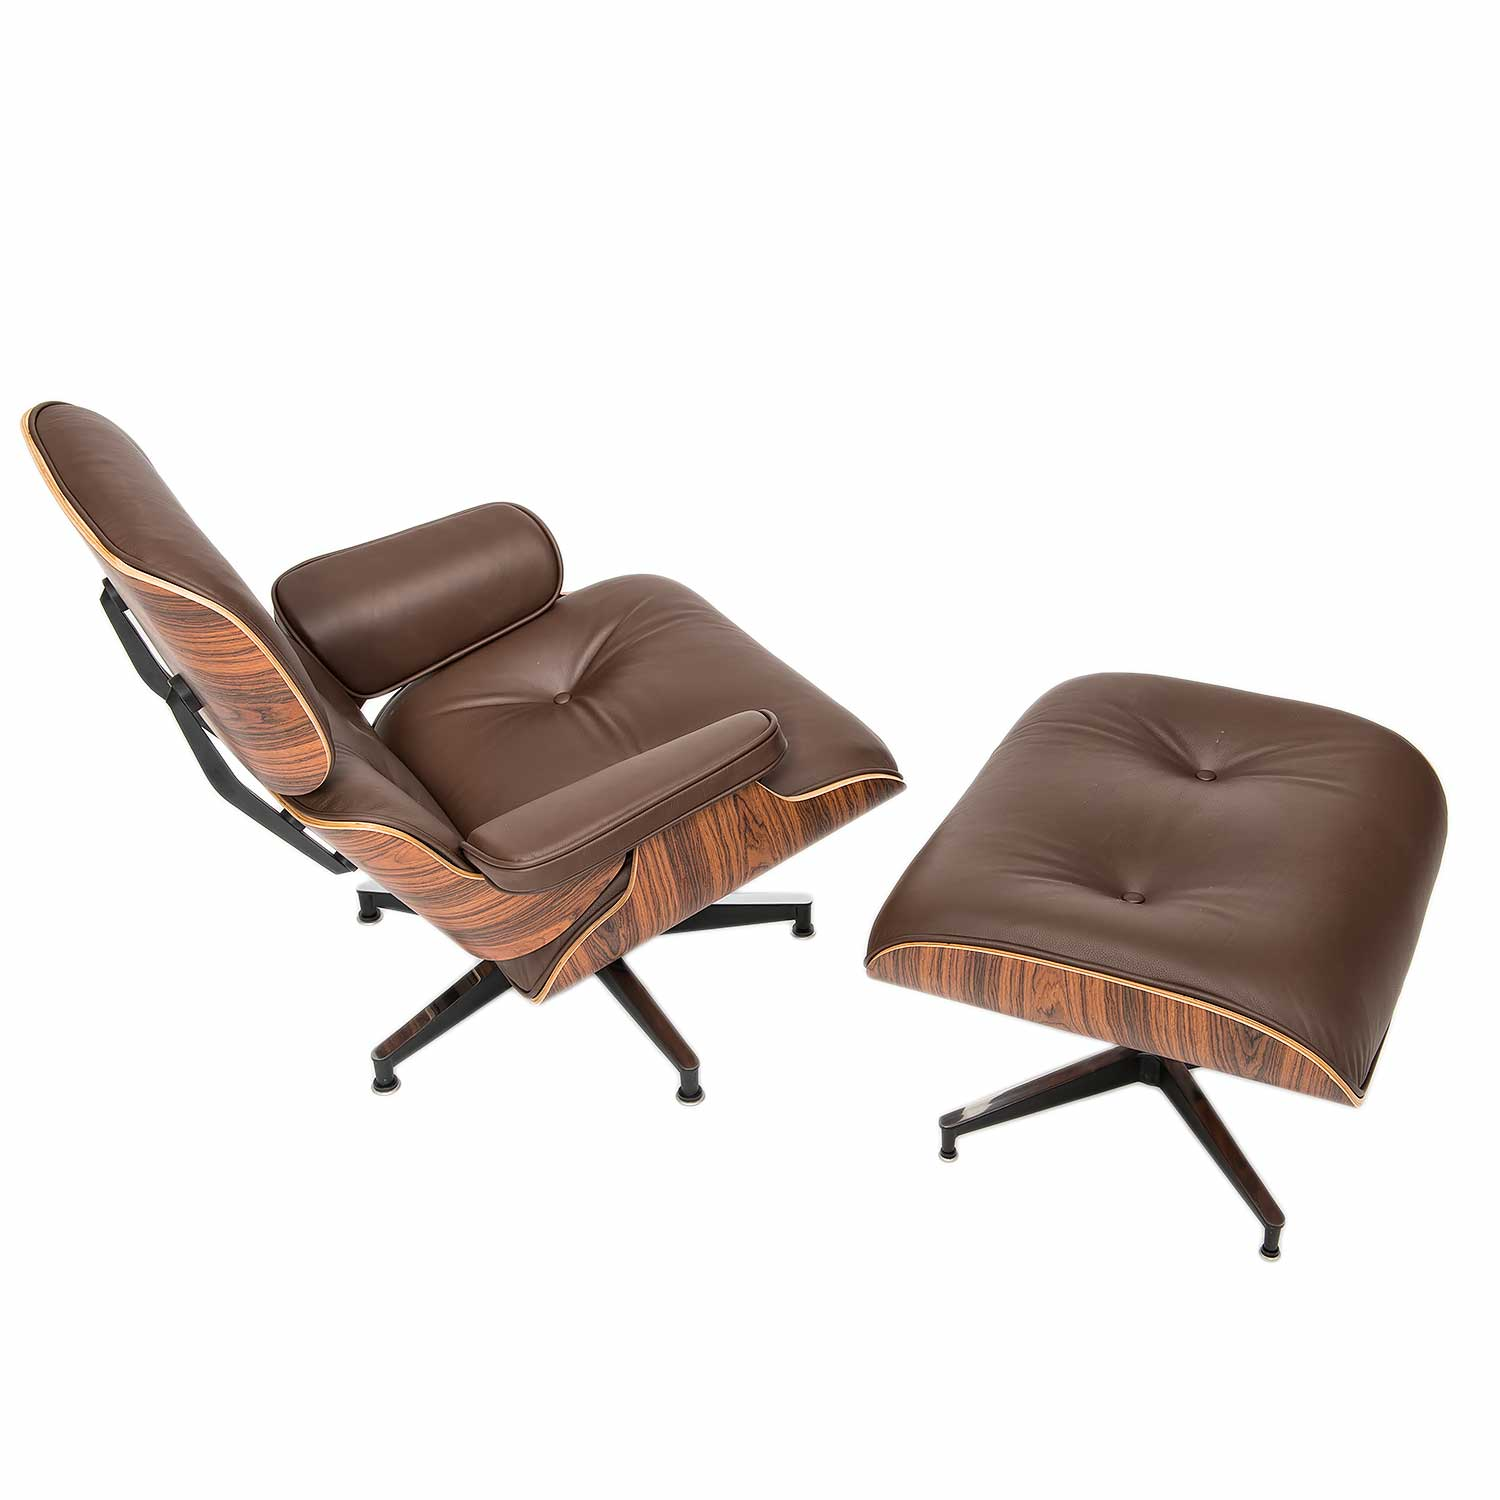 Original Eames Chair Eames Lounge Chair And Ottoman